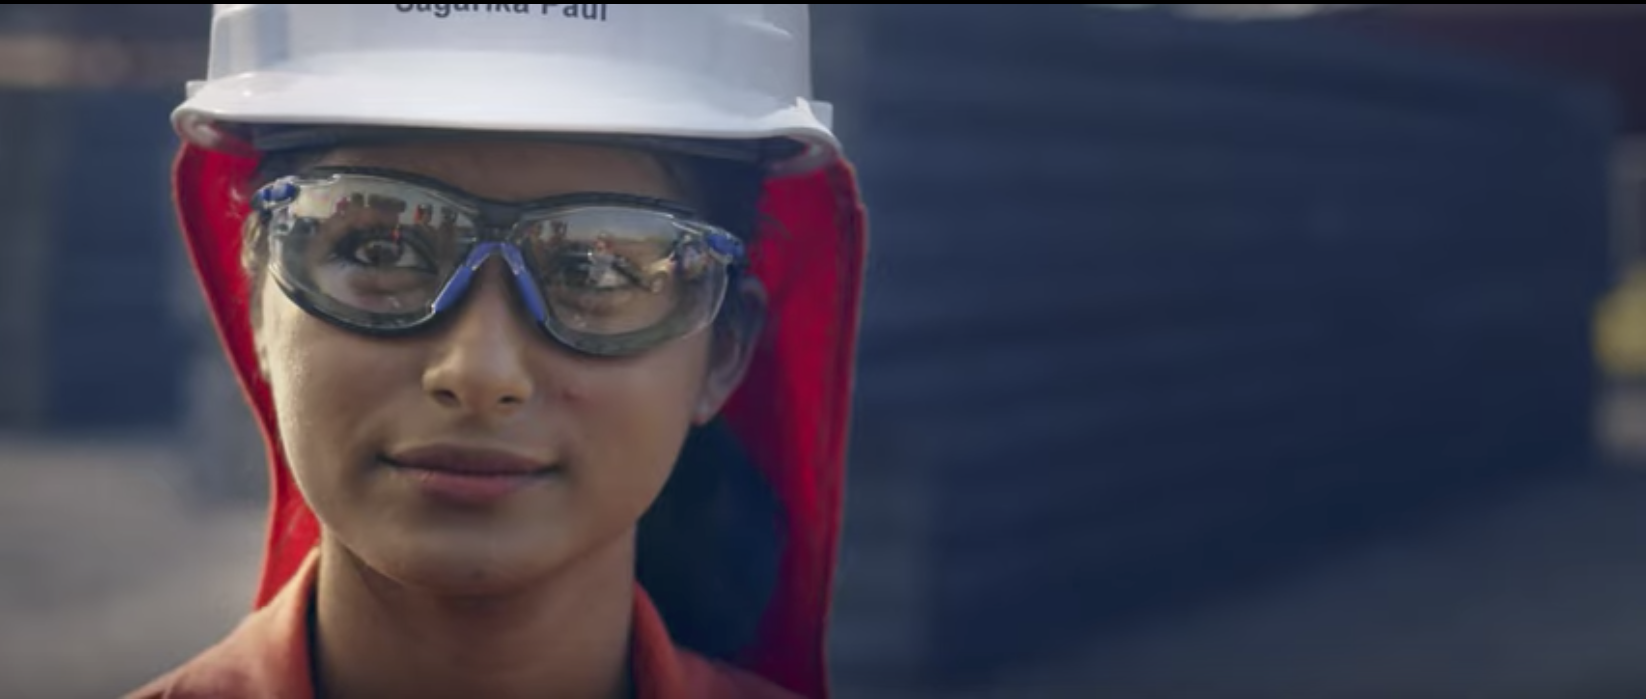 A woman wearing a construction hat and goggles